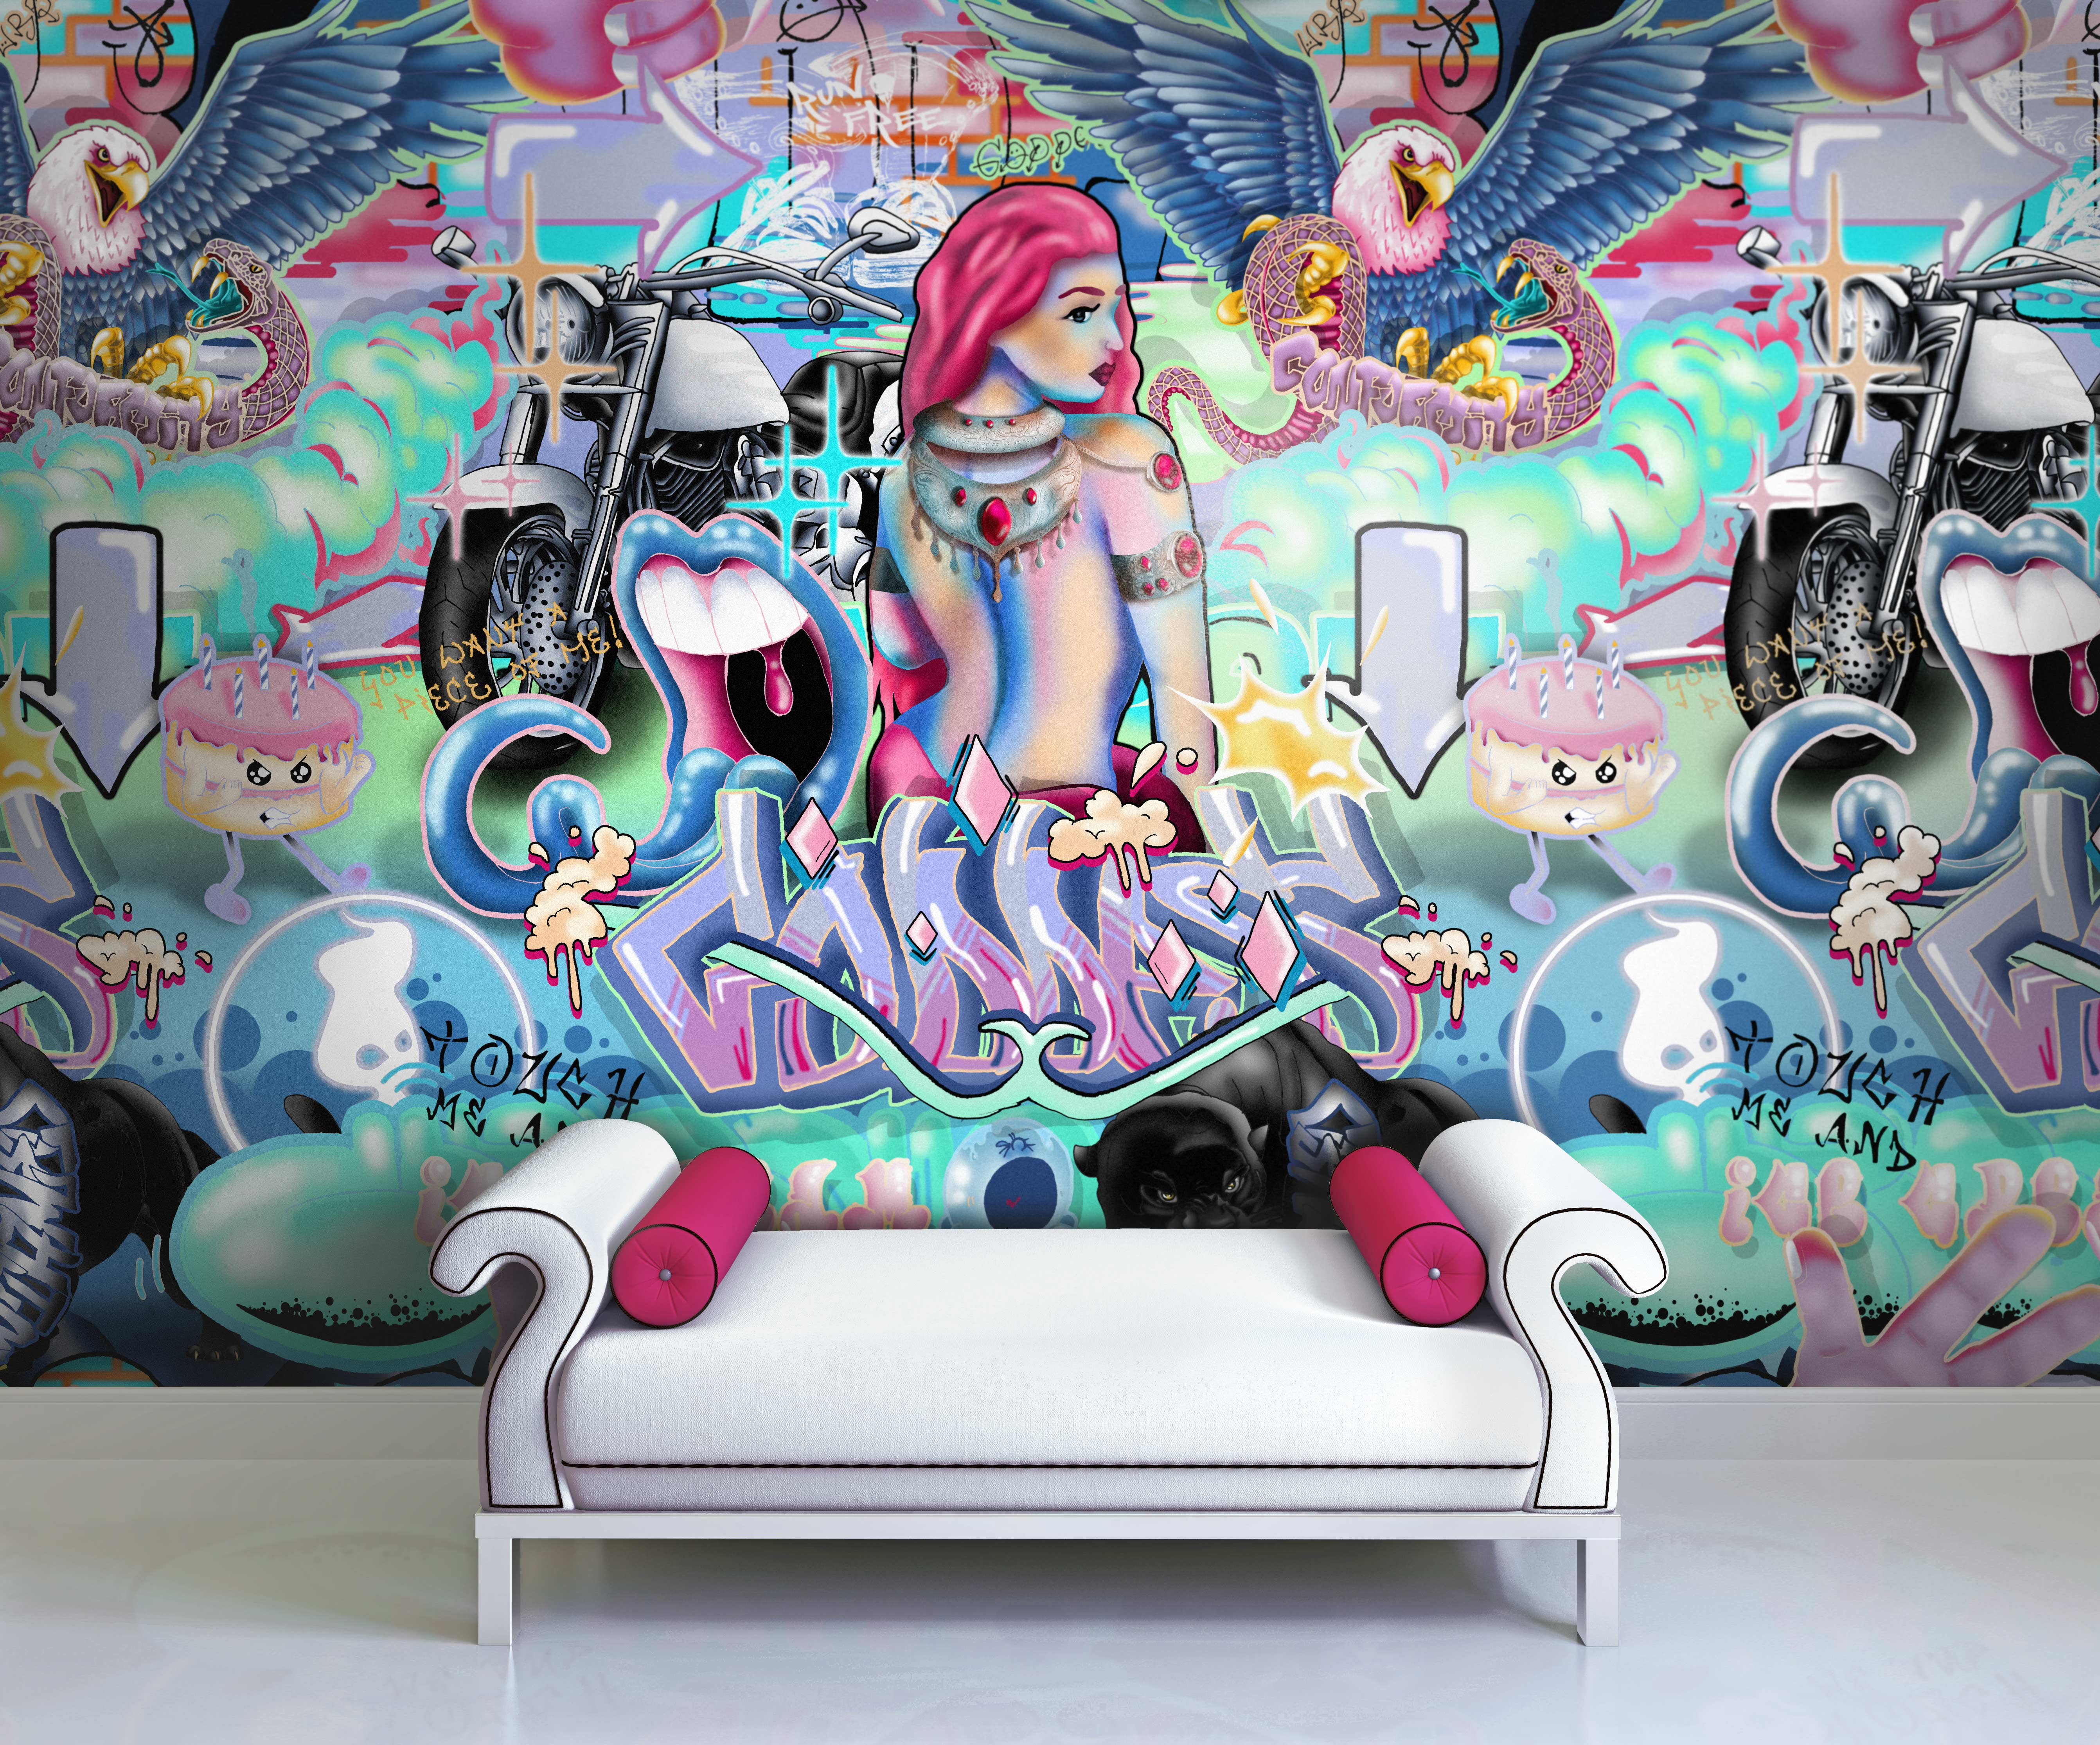 This is a funky and cool interior wall covering. It is perfect for a teenage girl or fashing dressing room. This custom wall mural wallpaper comes in pop neon colours of aqua, pink and blue. It has a graffiti and pop art style